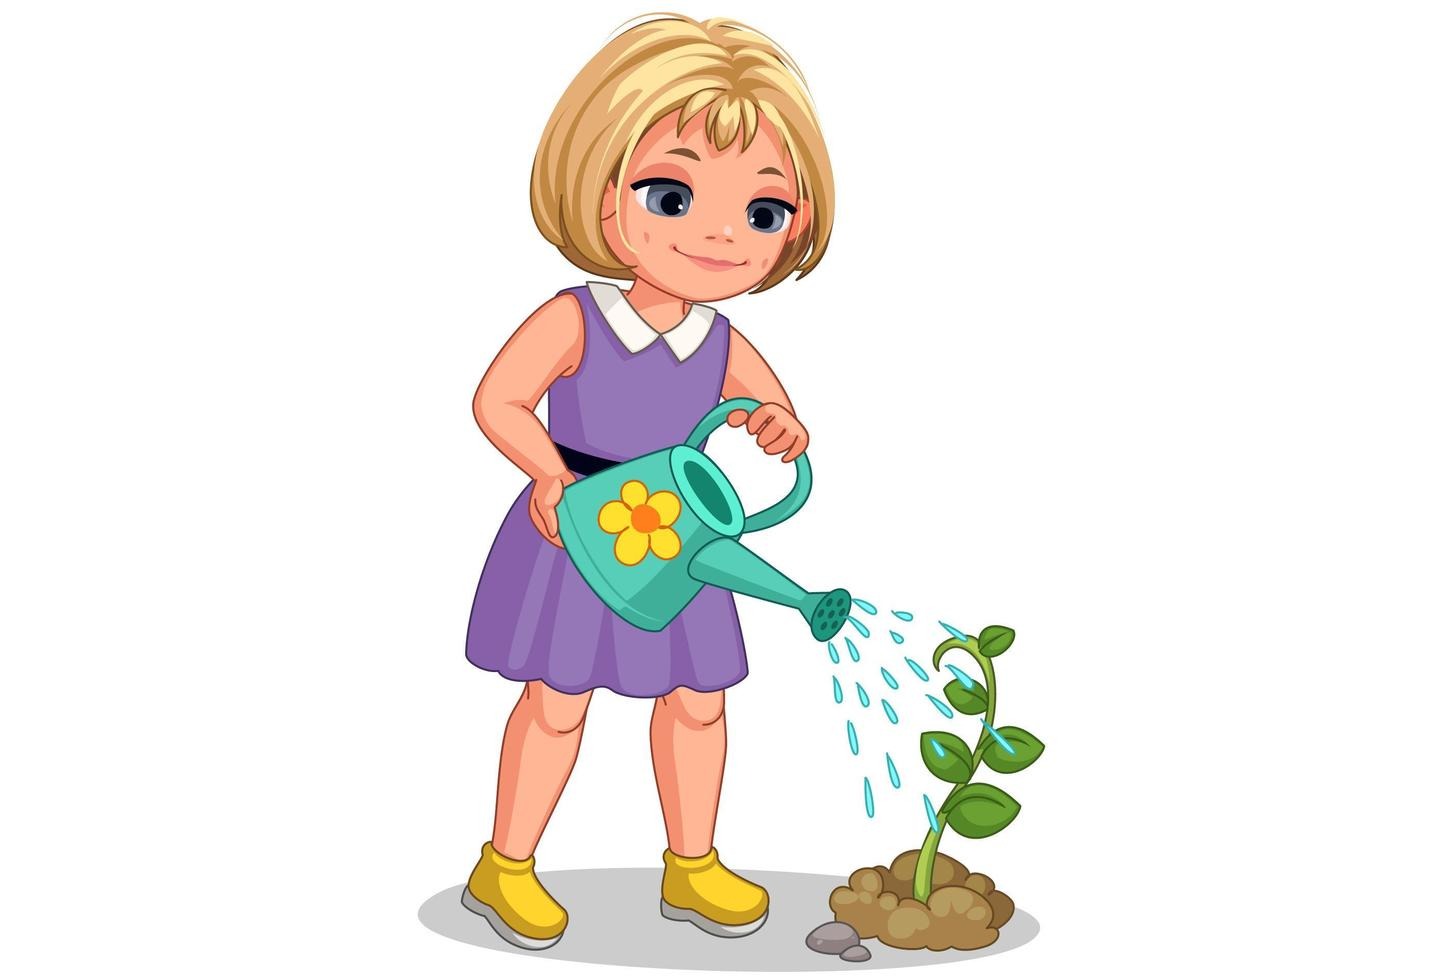 Gardening clipart watering can, Gardening watering can Transparent FREE for  download on WebStockReview 2020